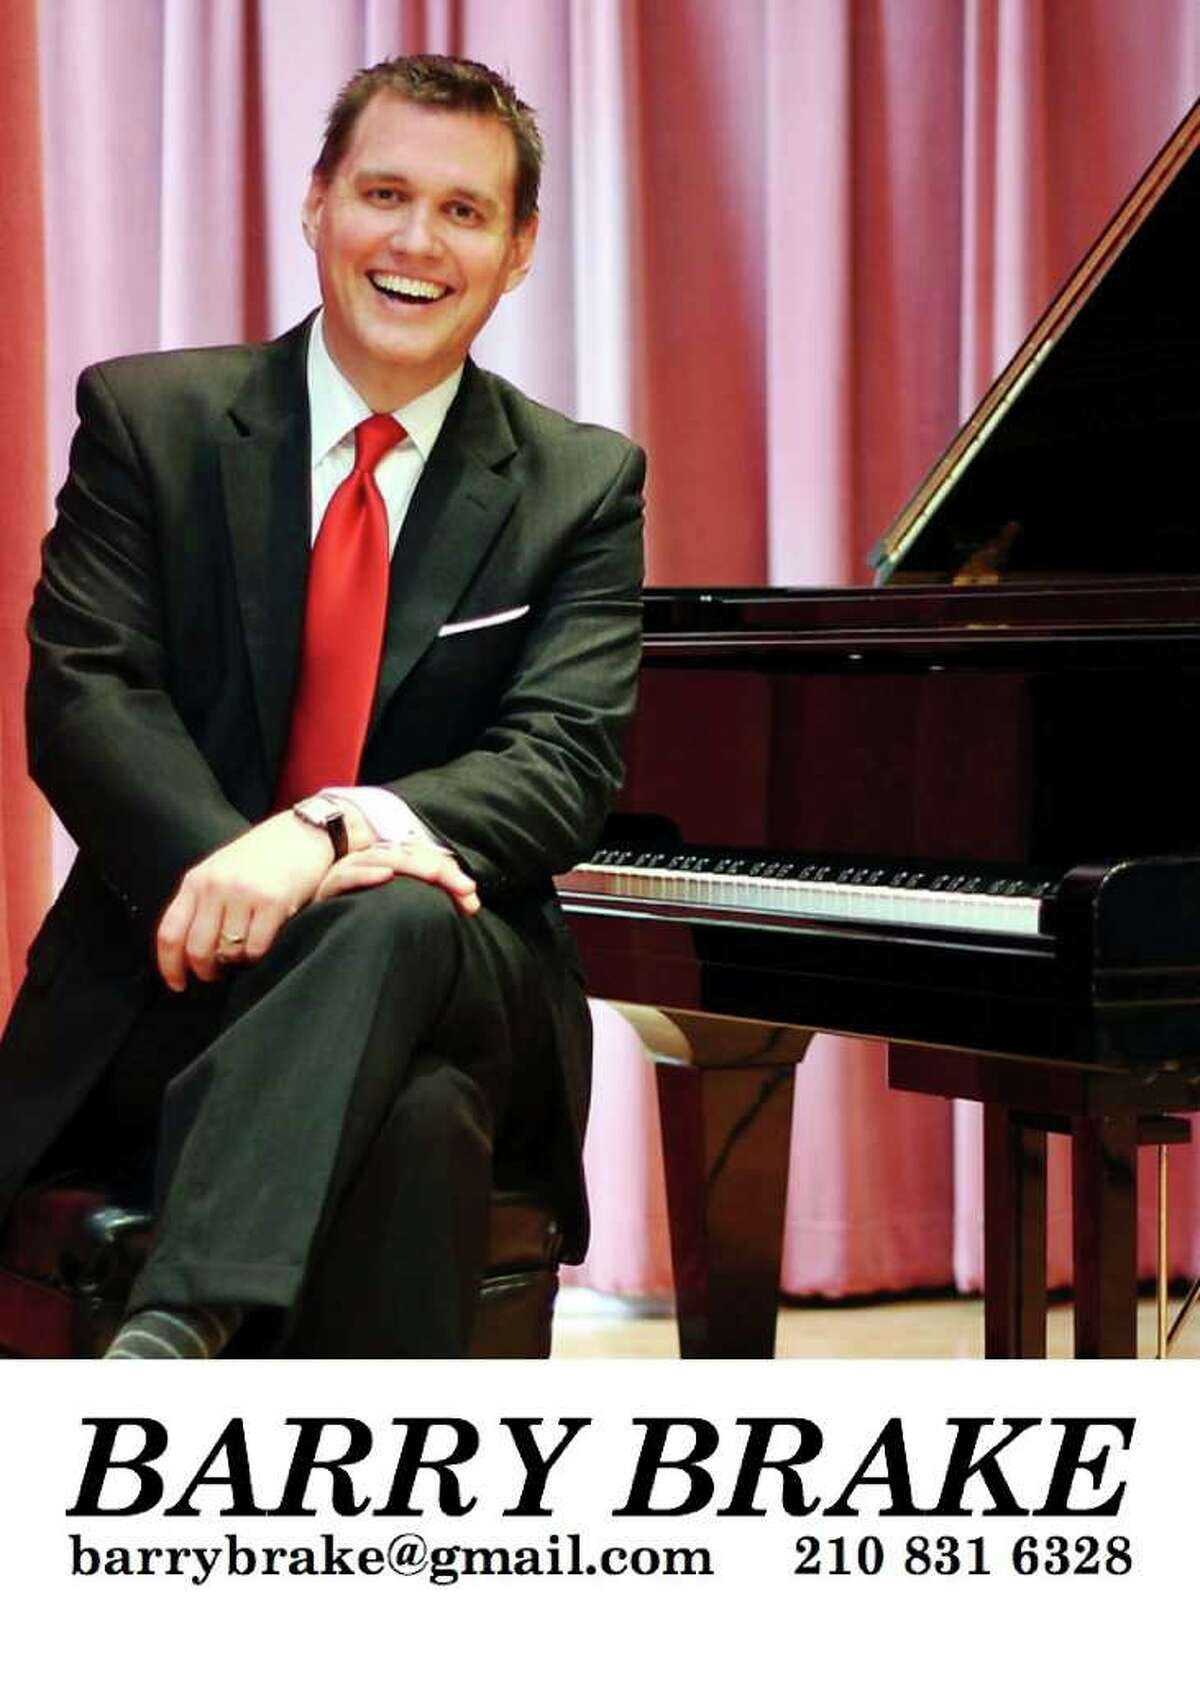 San Antonio jazz pianist Barry Brake will present songs from